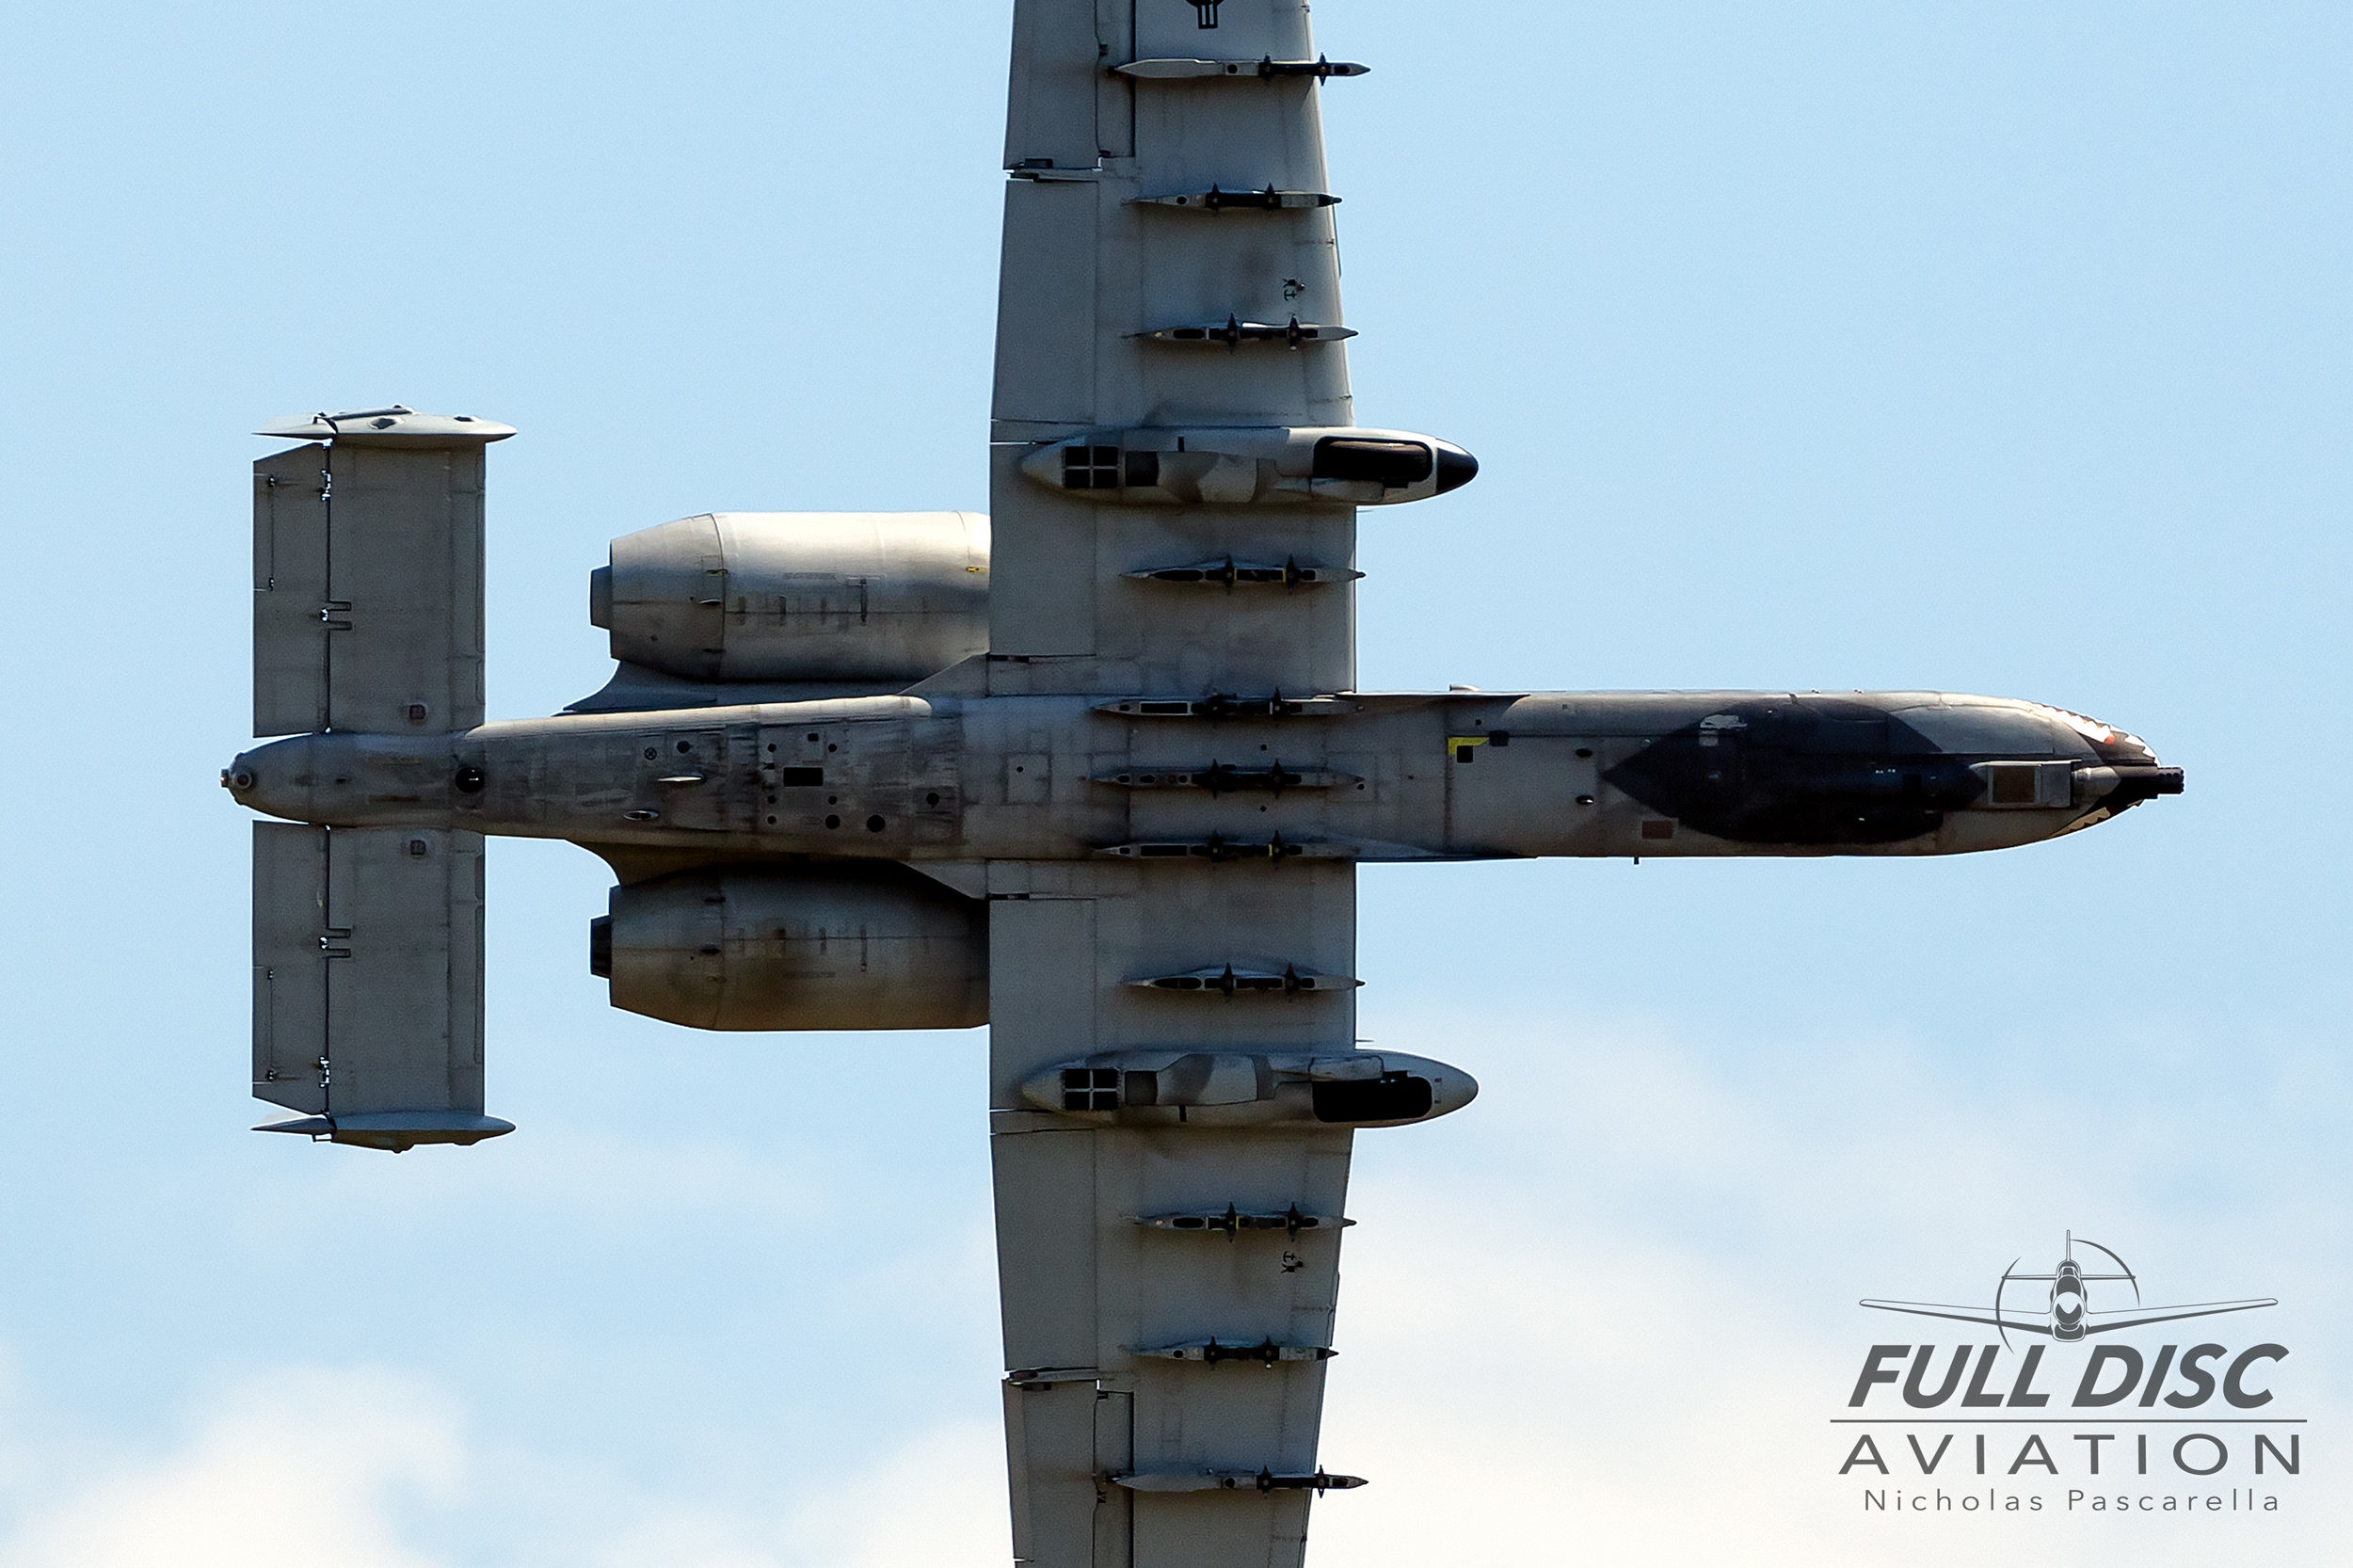 warthog_belly_wingsoverwayne_nicholaspascarella_fulldiscavation_aviation_airshow.jpg